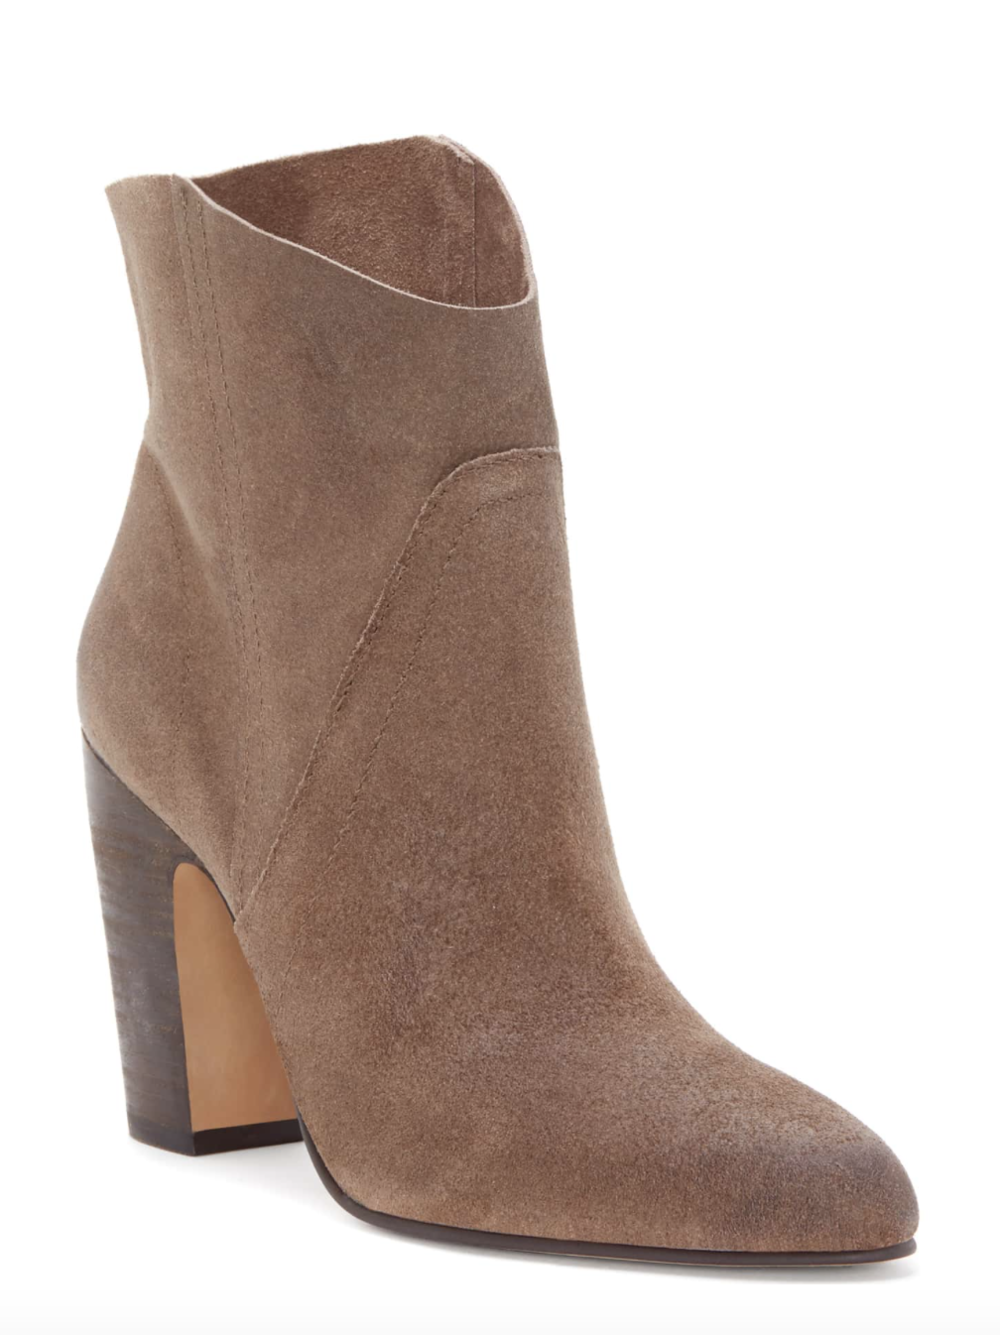 Vince Camuto Western Bootie - The style is so flattering and elongates your legs! Comes in several colors & 50% off!